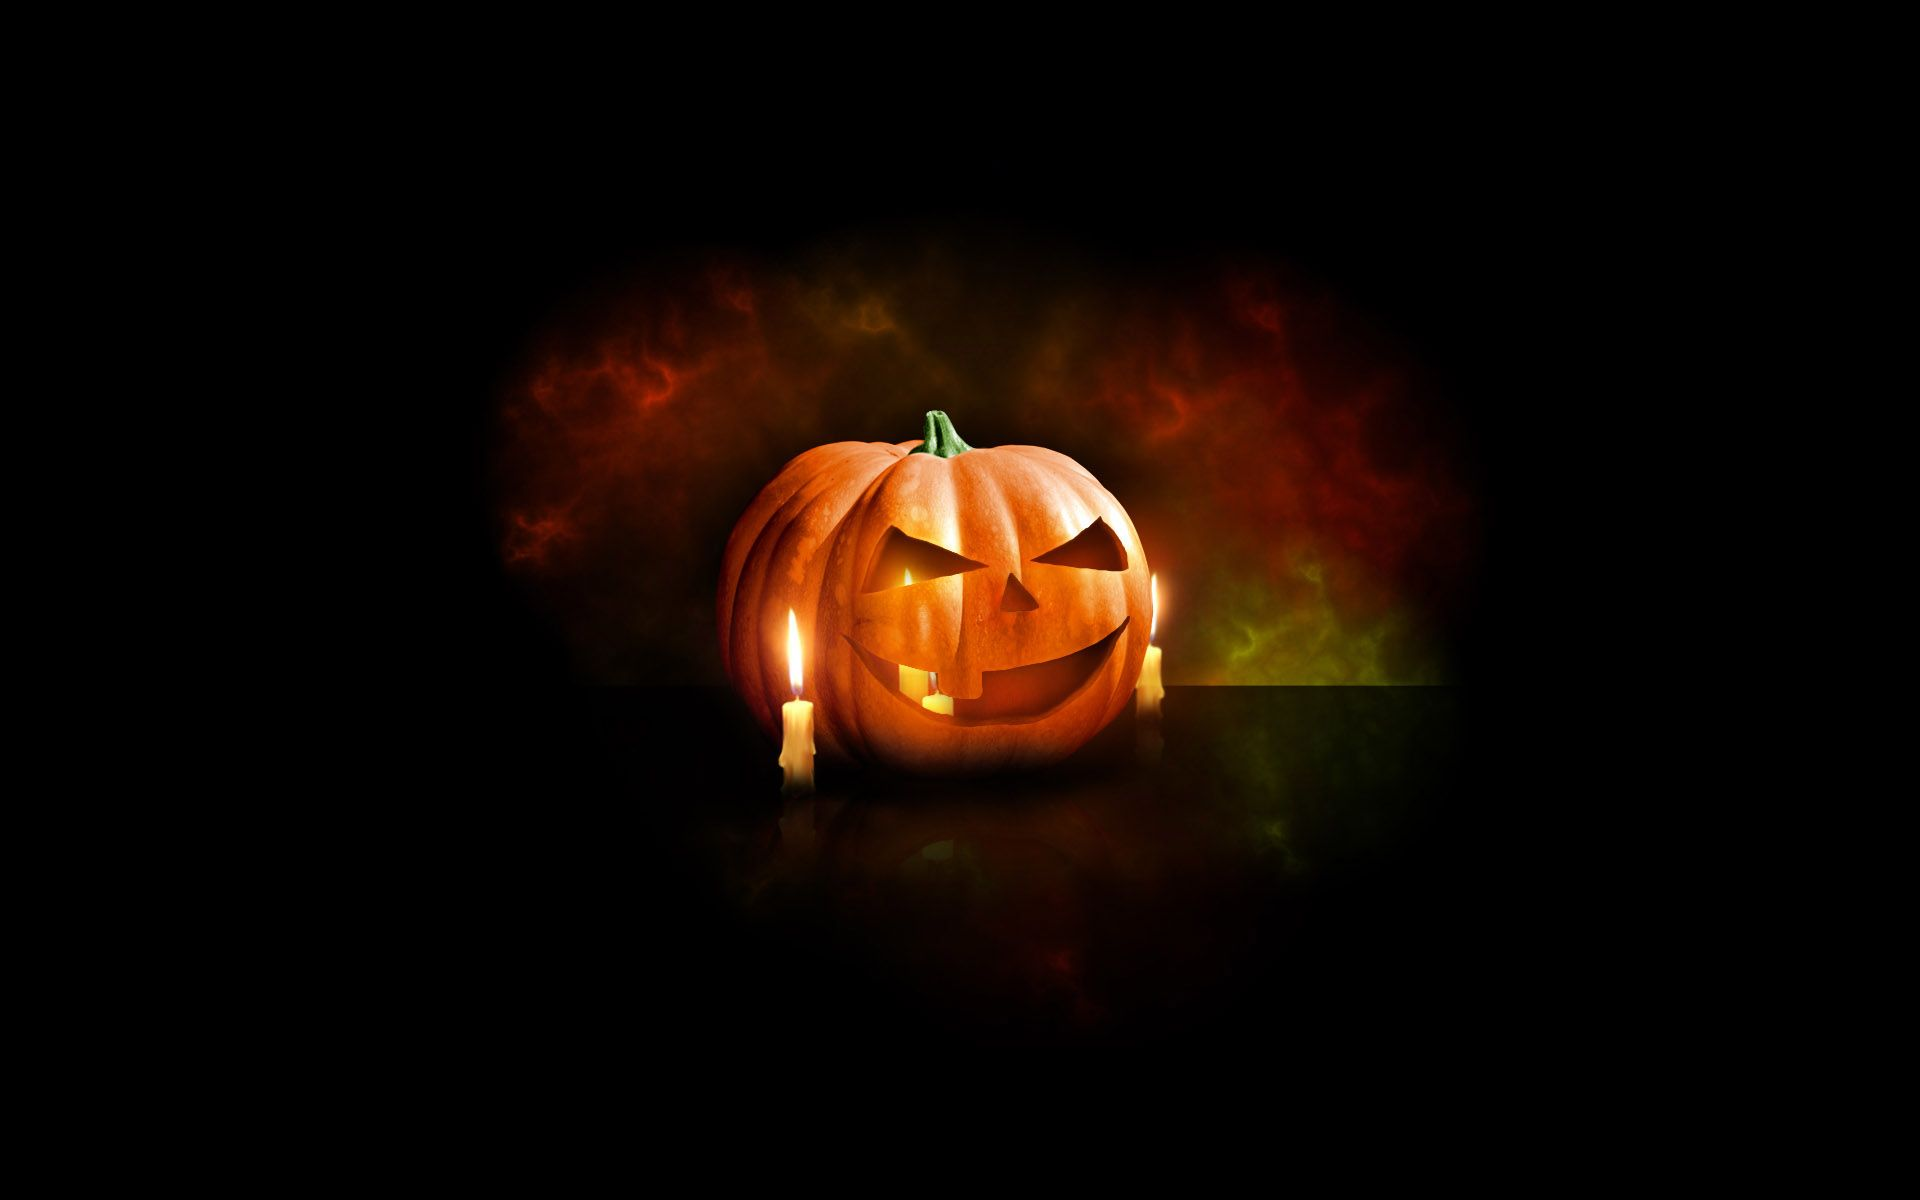 Jack O Lantern Wallpaper 1080p 5zw Holiday Desktop Hd